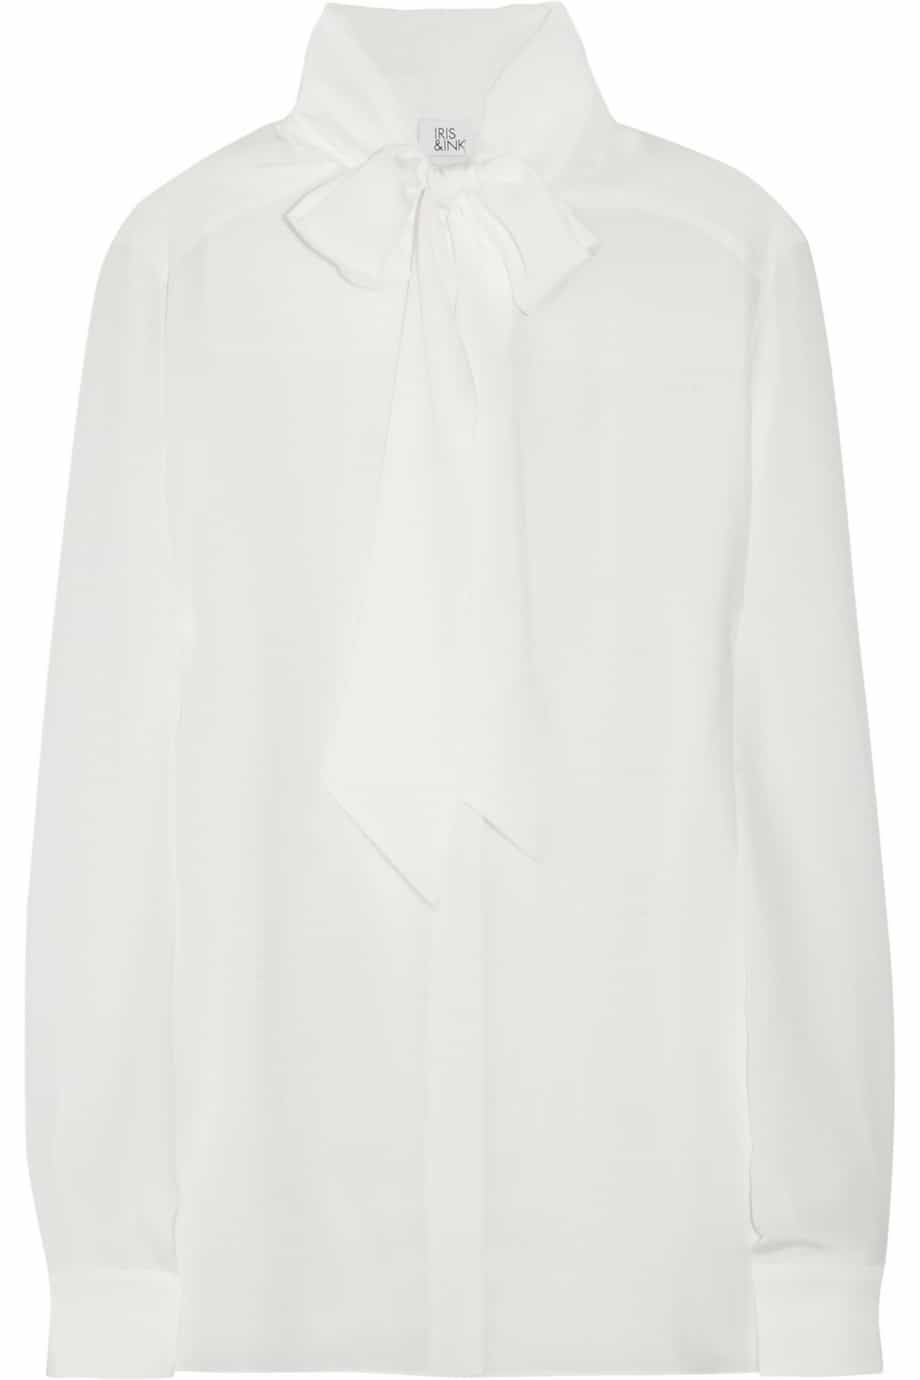 Iris & Ink The Pussybow silk-crepe blouse THE OUTNET price £98